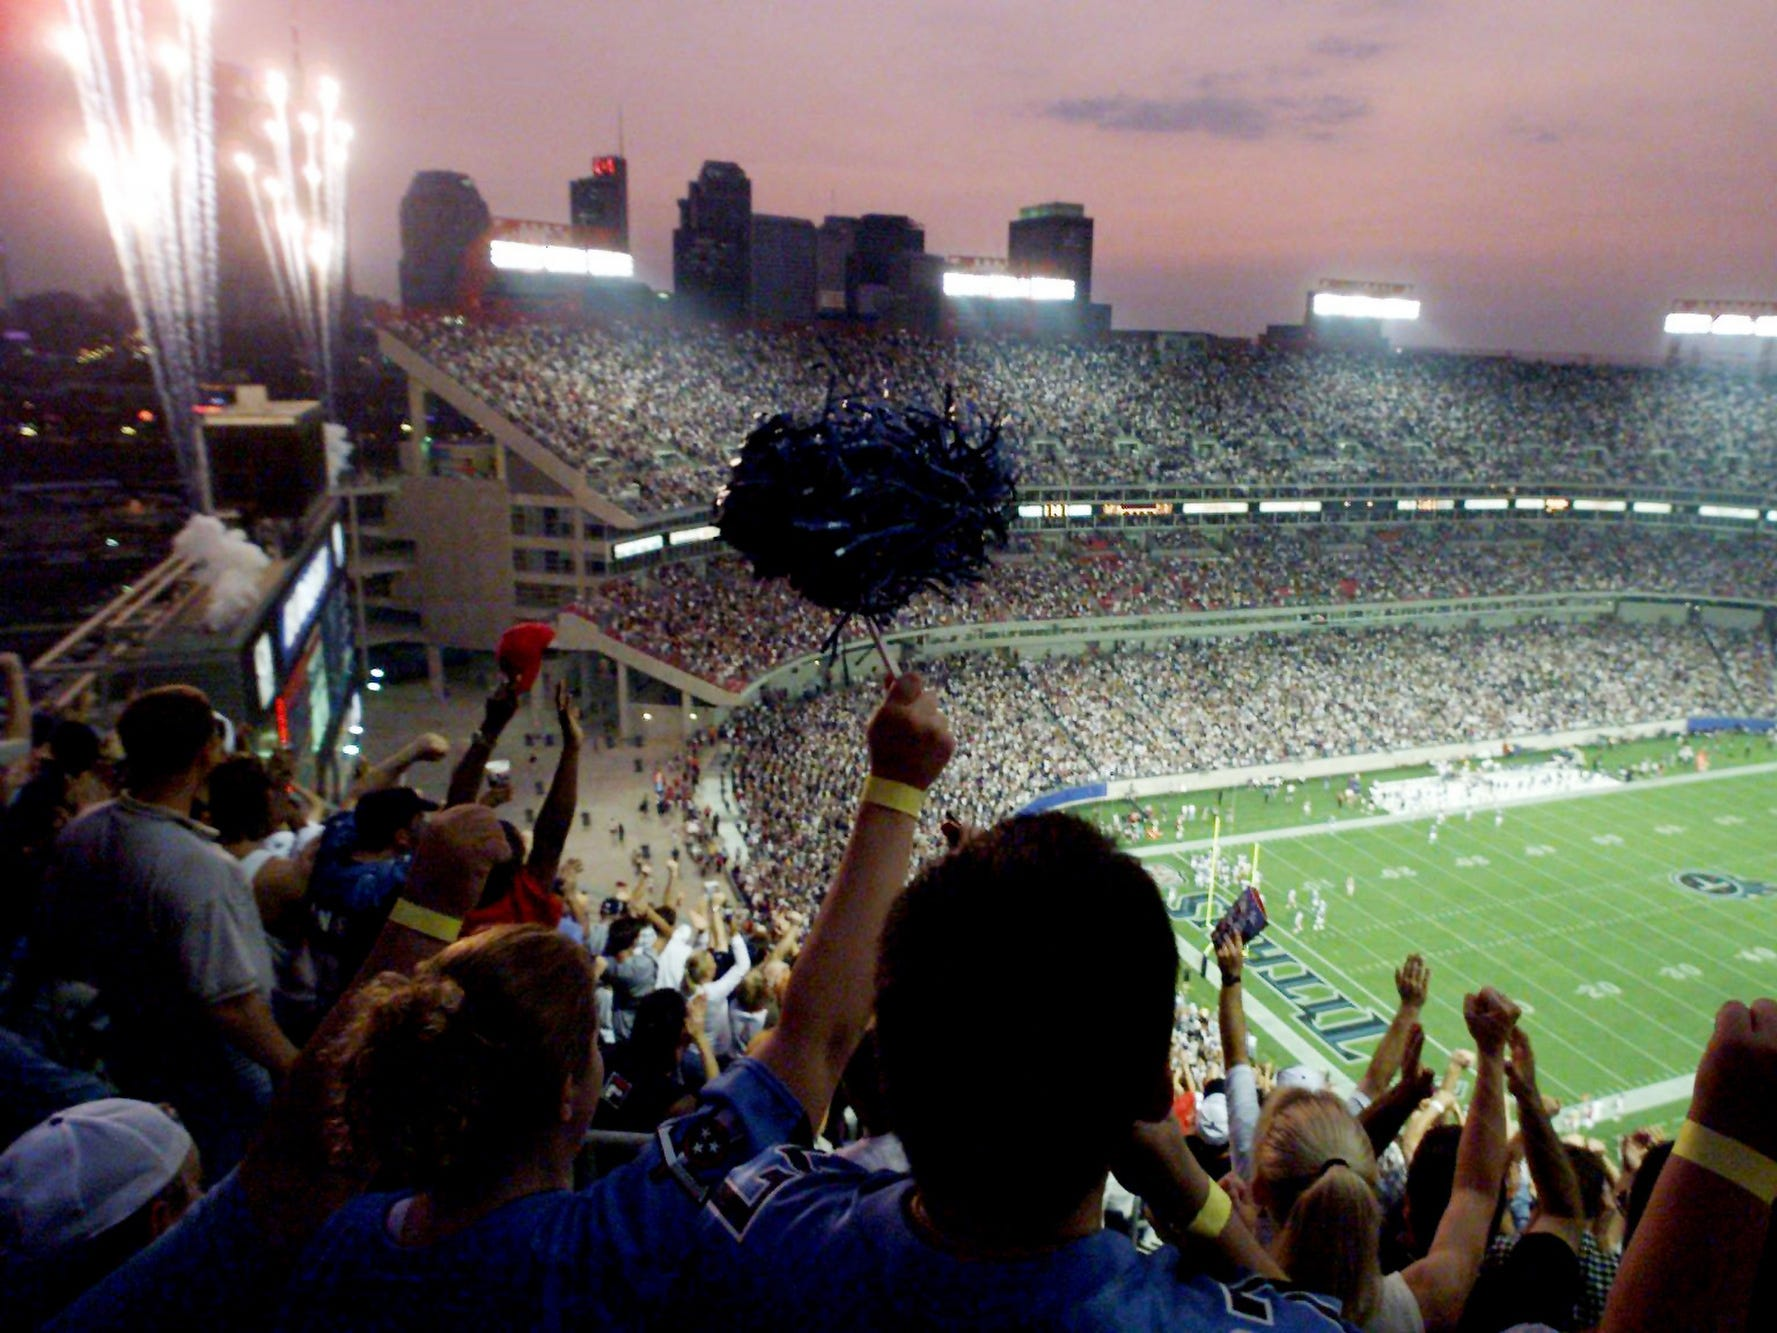 A crowd of more than 65,000 goes wild, and the fireworks soar, as the Tennessee Titans score their first touchdown in the new Adelphia Coliseum Aug. 27, 1999.  The Titans went on to defeat the Atlanta Falcons, 17-3, in their third game of the preseason and first game ever in their new stadium.